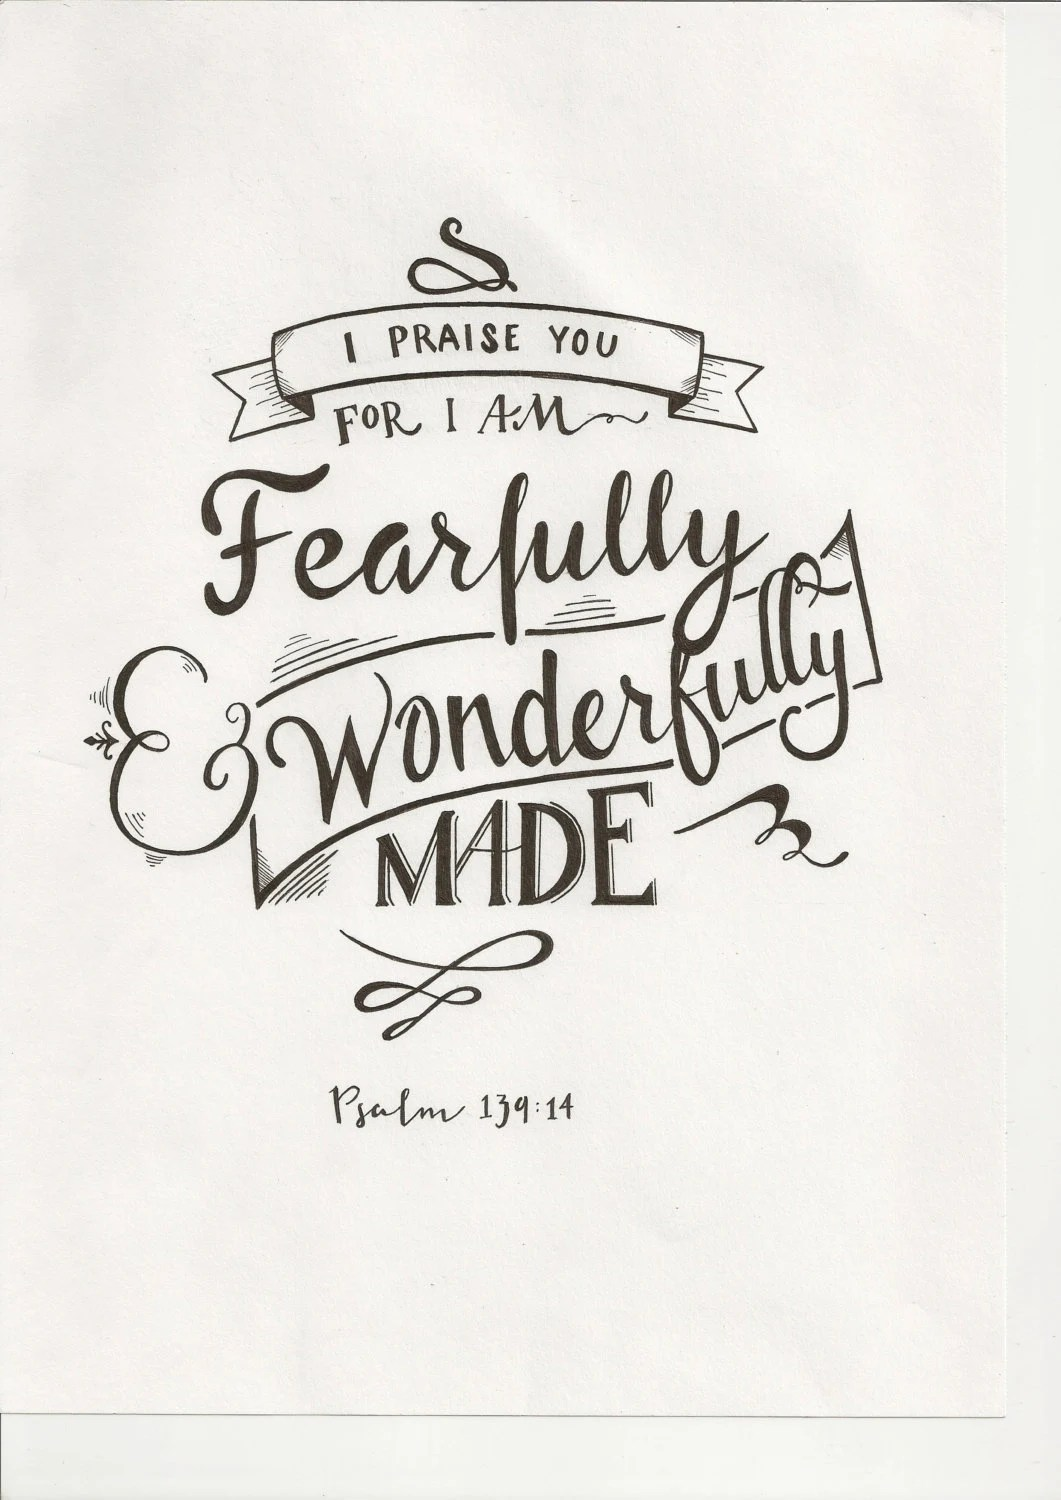 Items similar to Psalm 139:14 Typography on Etsy